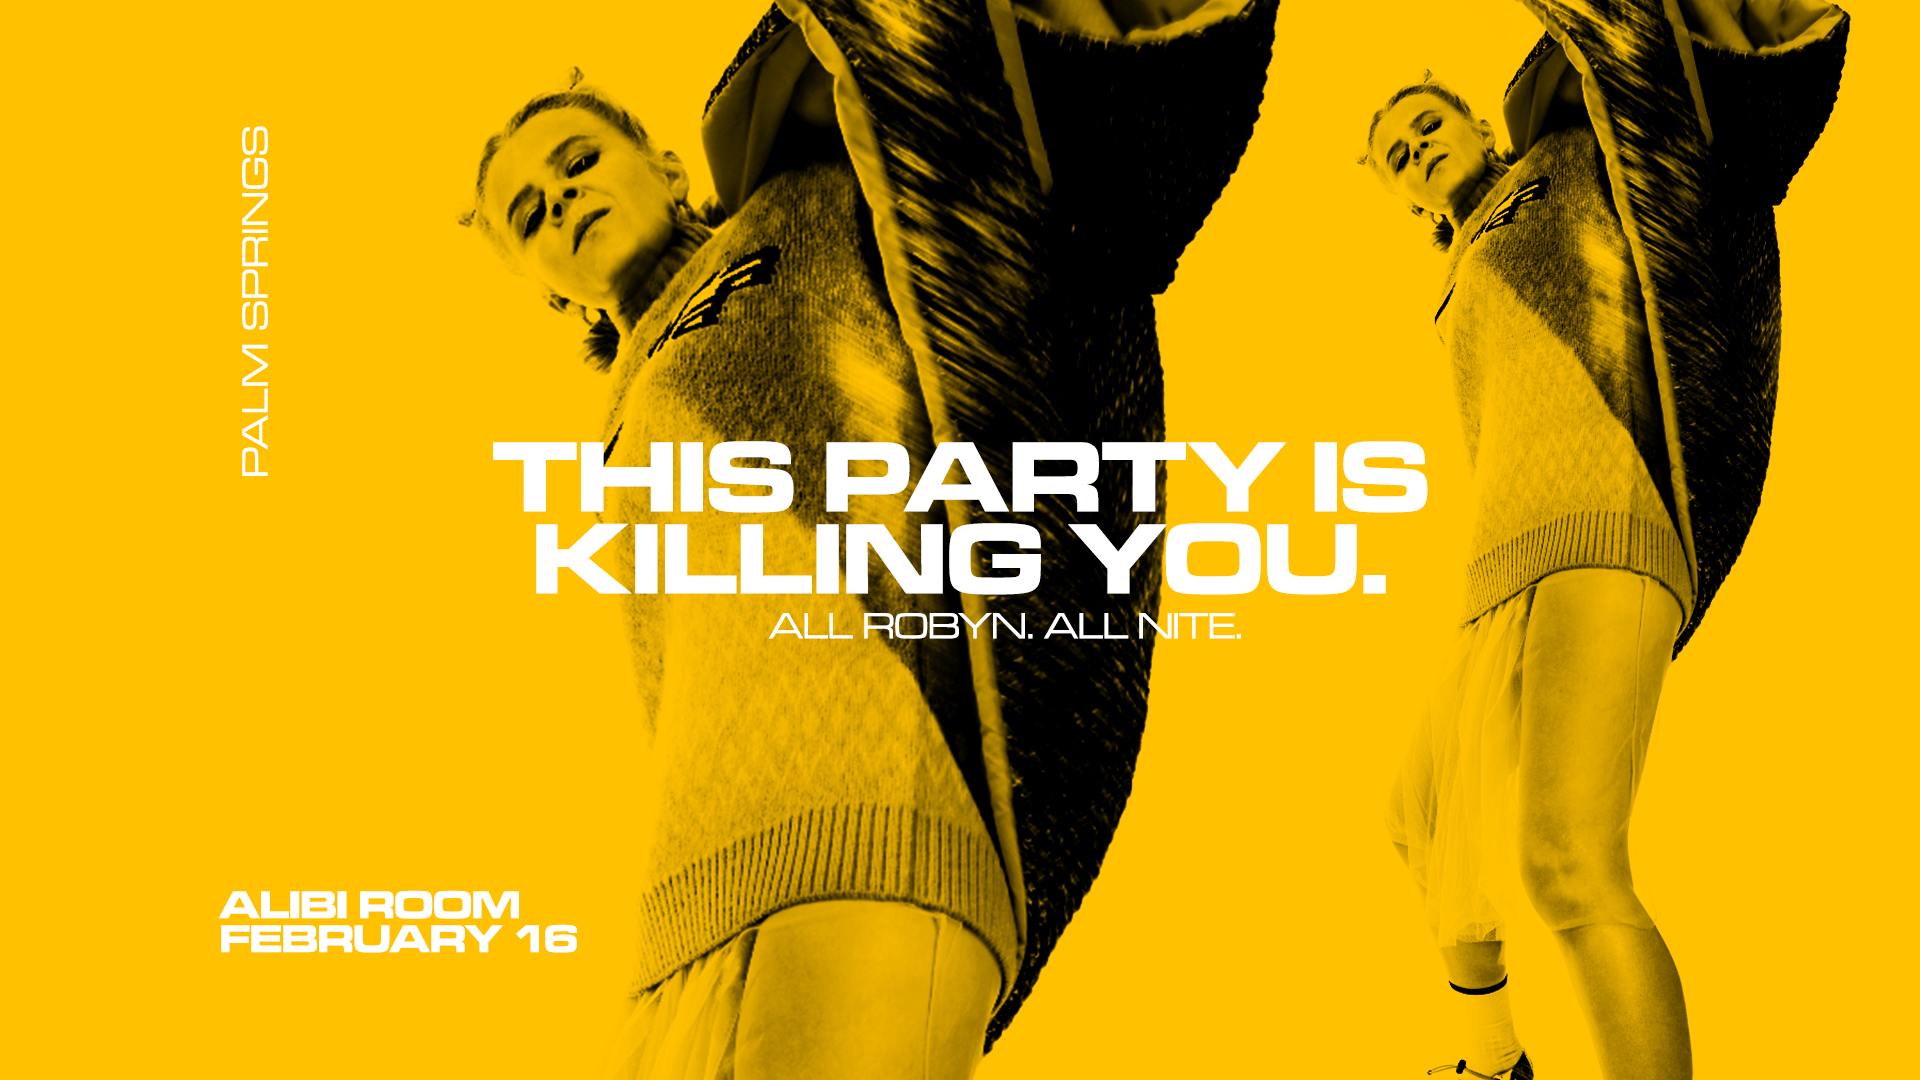 This Party Is Killing You: A Night of All Robyn Everything! Palm Springs Edition Feb 16th